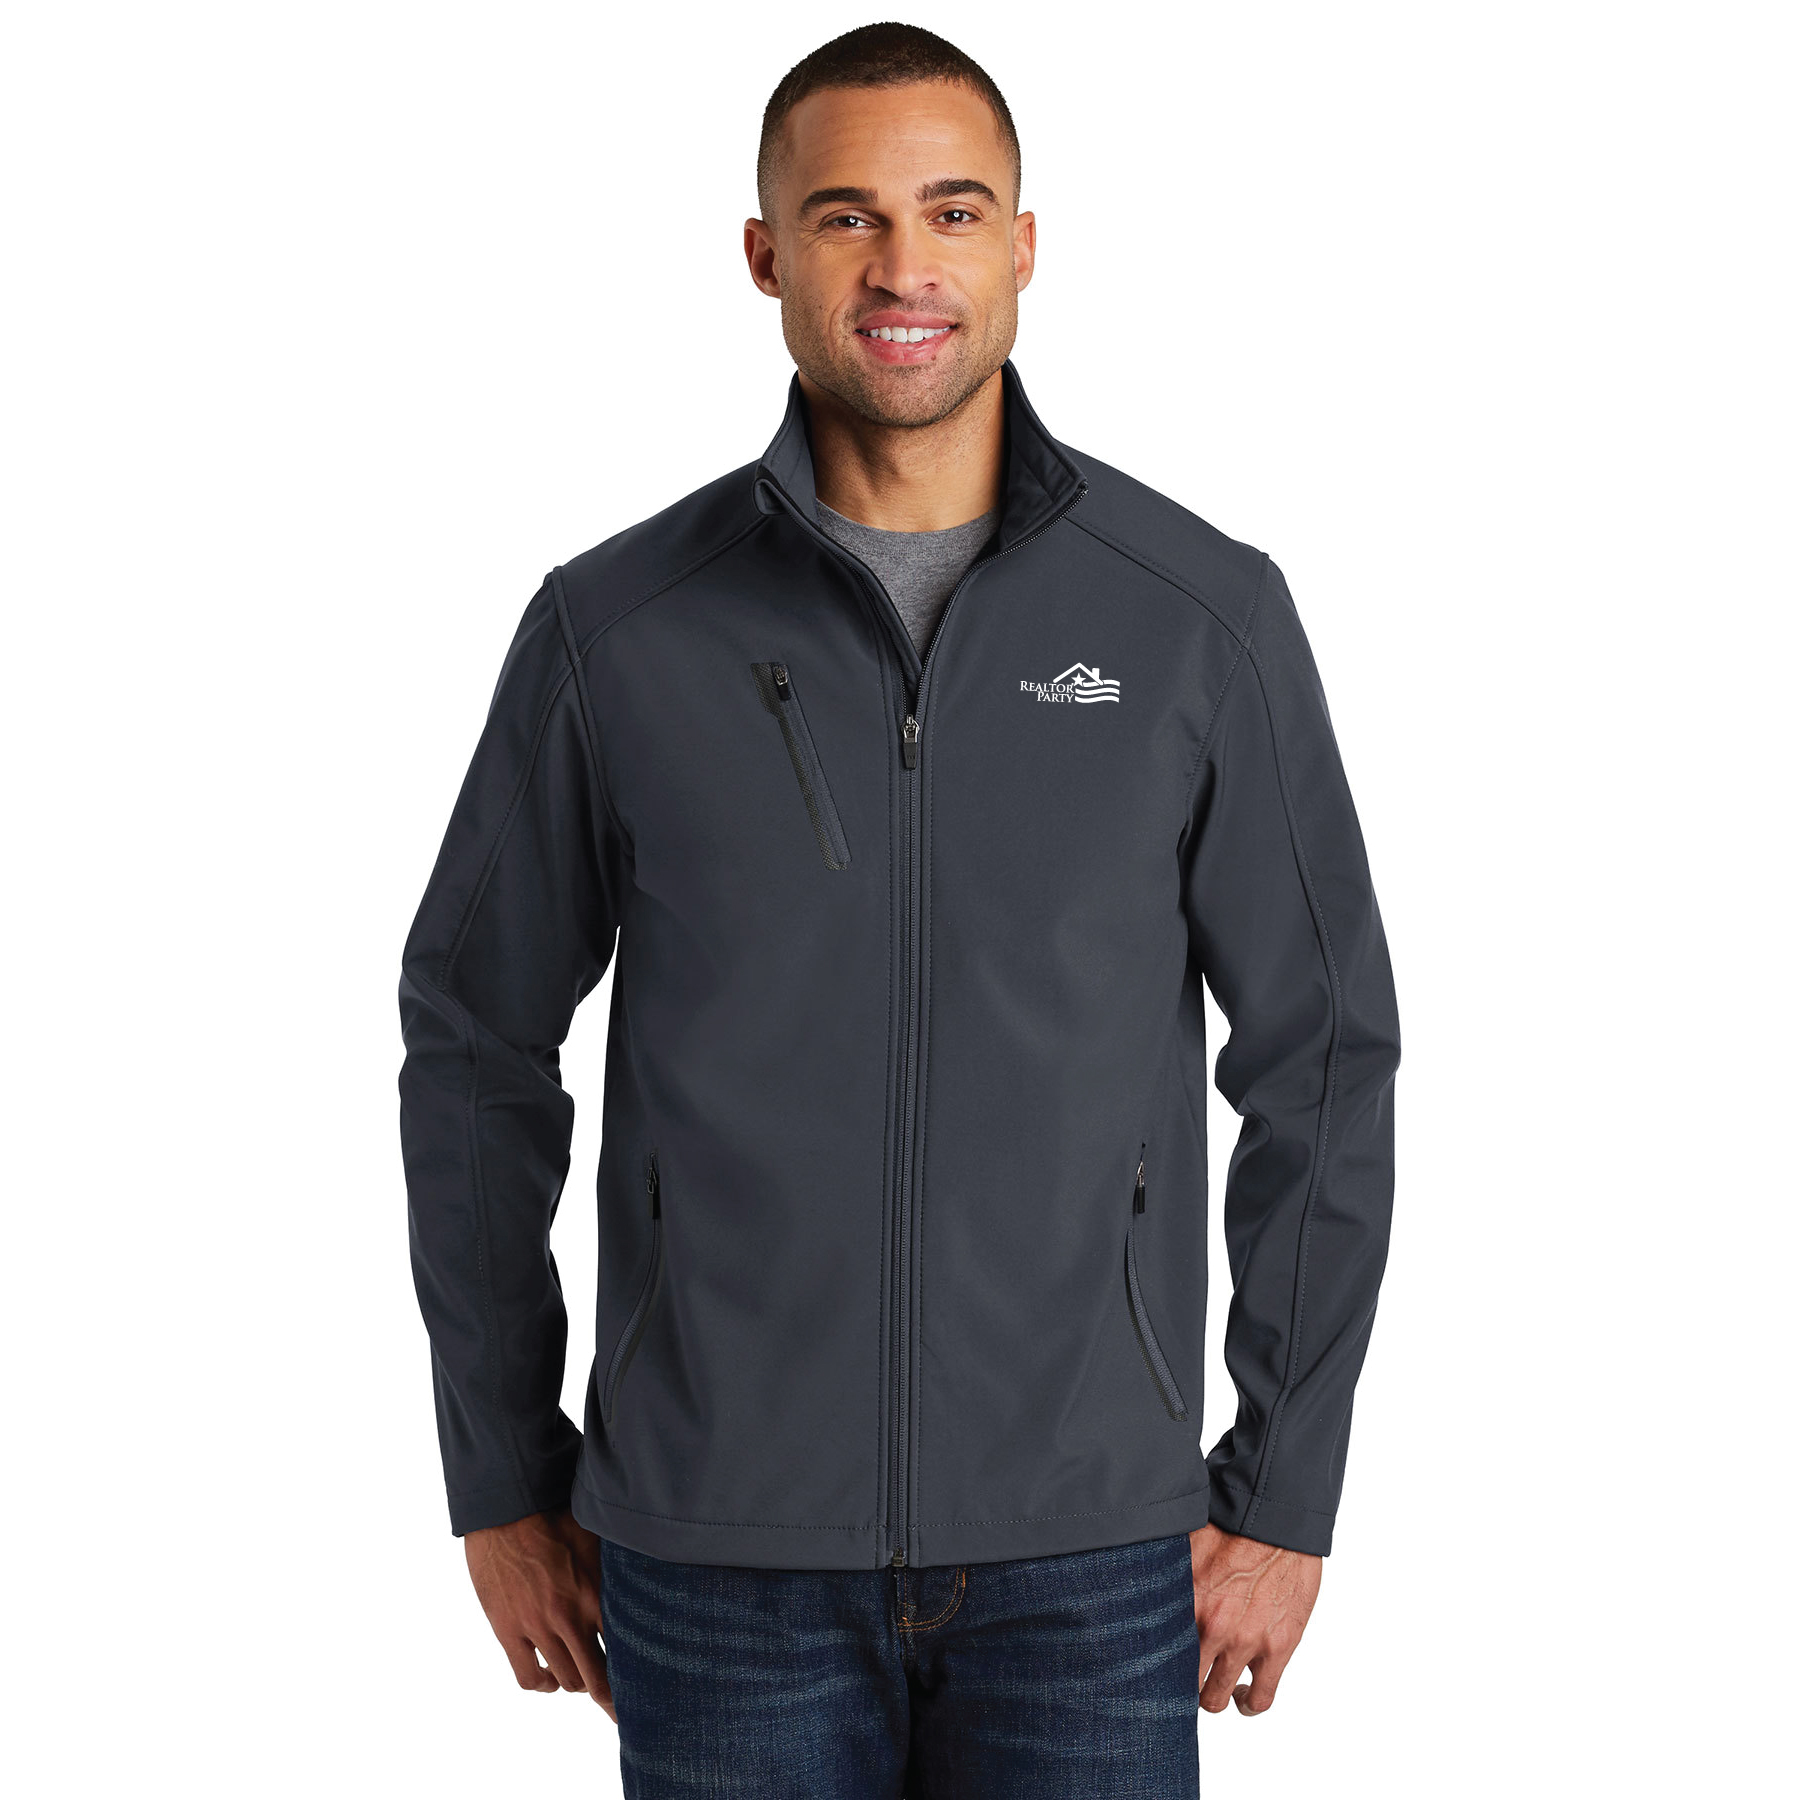 REALTOR® Party Welded Soft Shell Jacket RPAC,Parties,Leadership